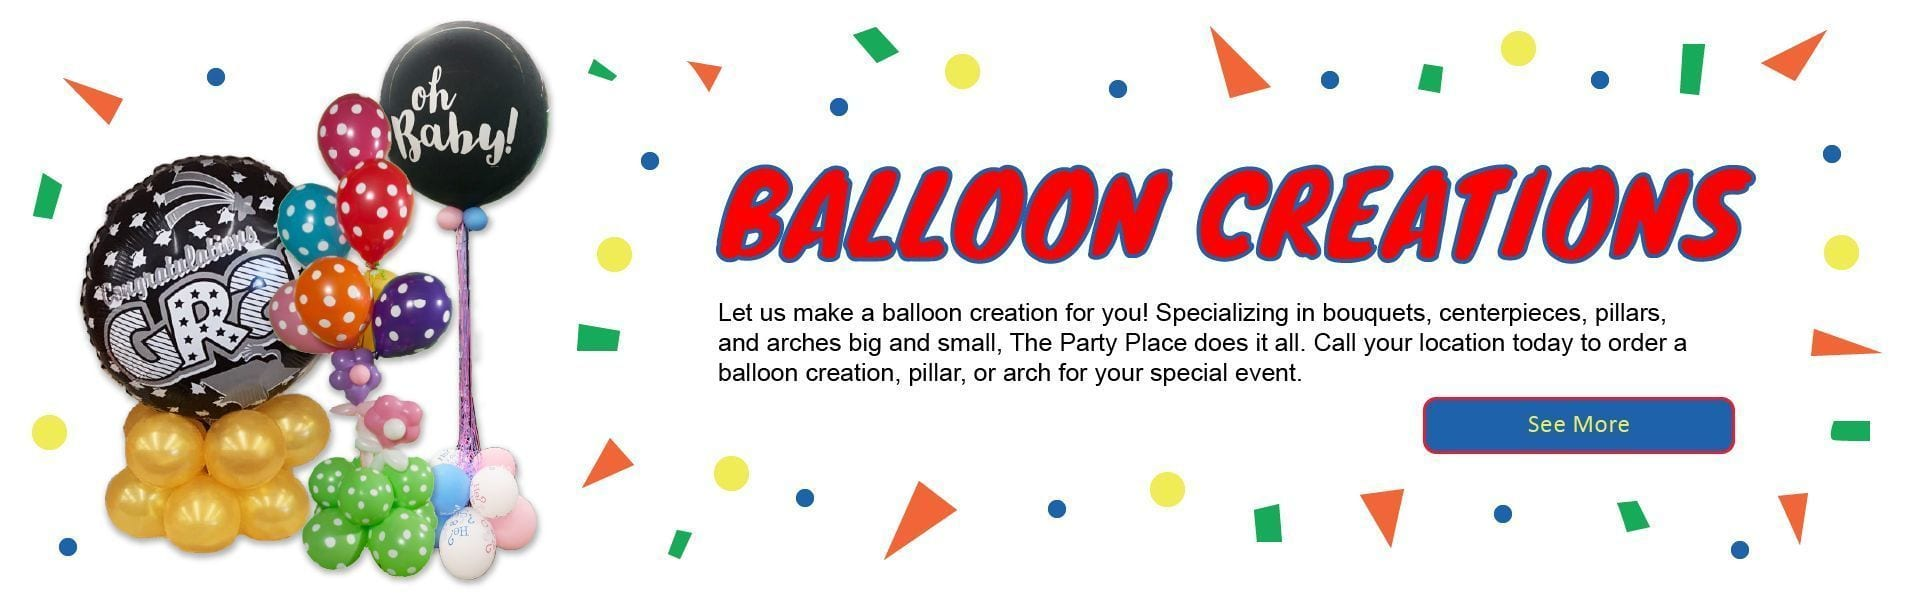 balloon creations